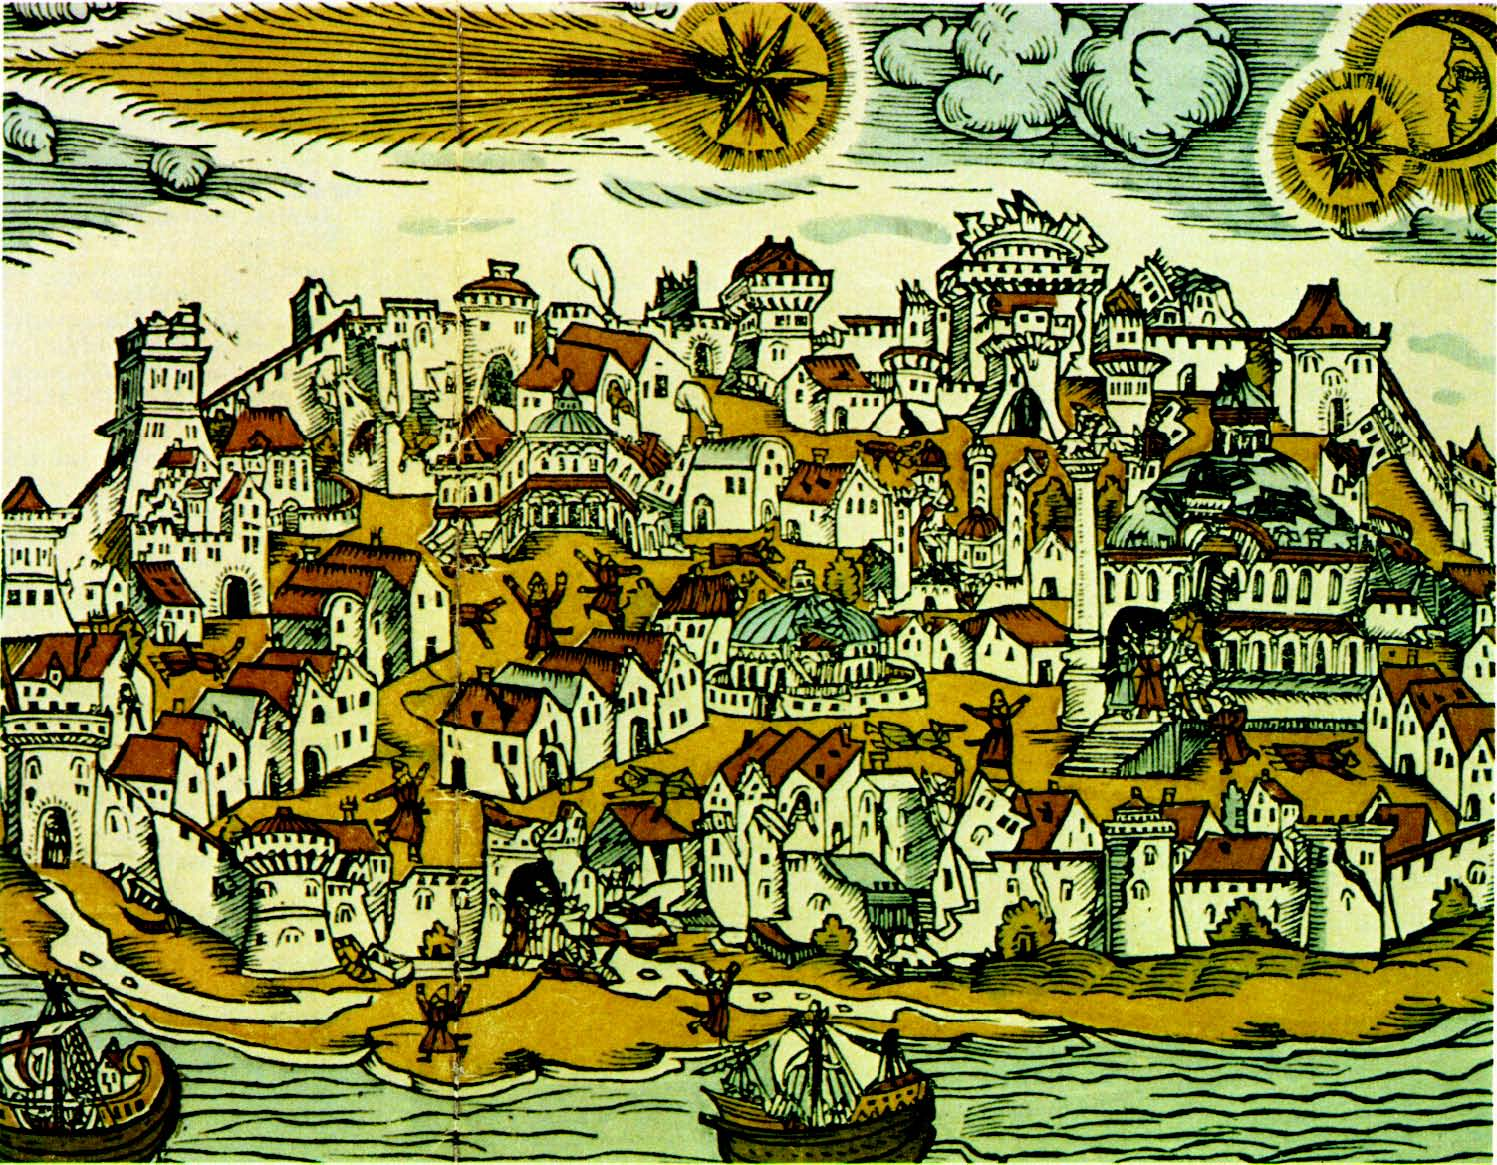 File:Istanbul comet and earthquake 1556.jpg